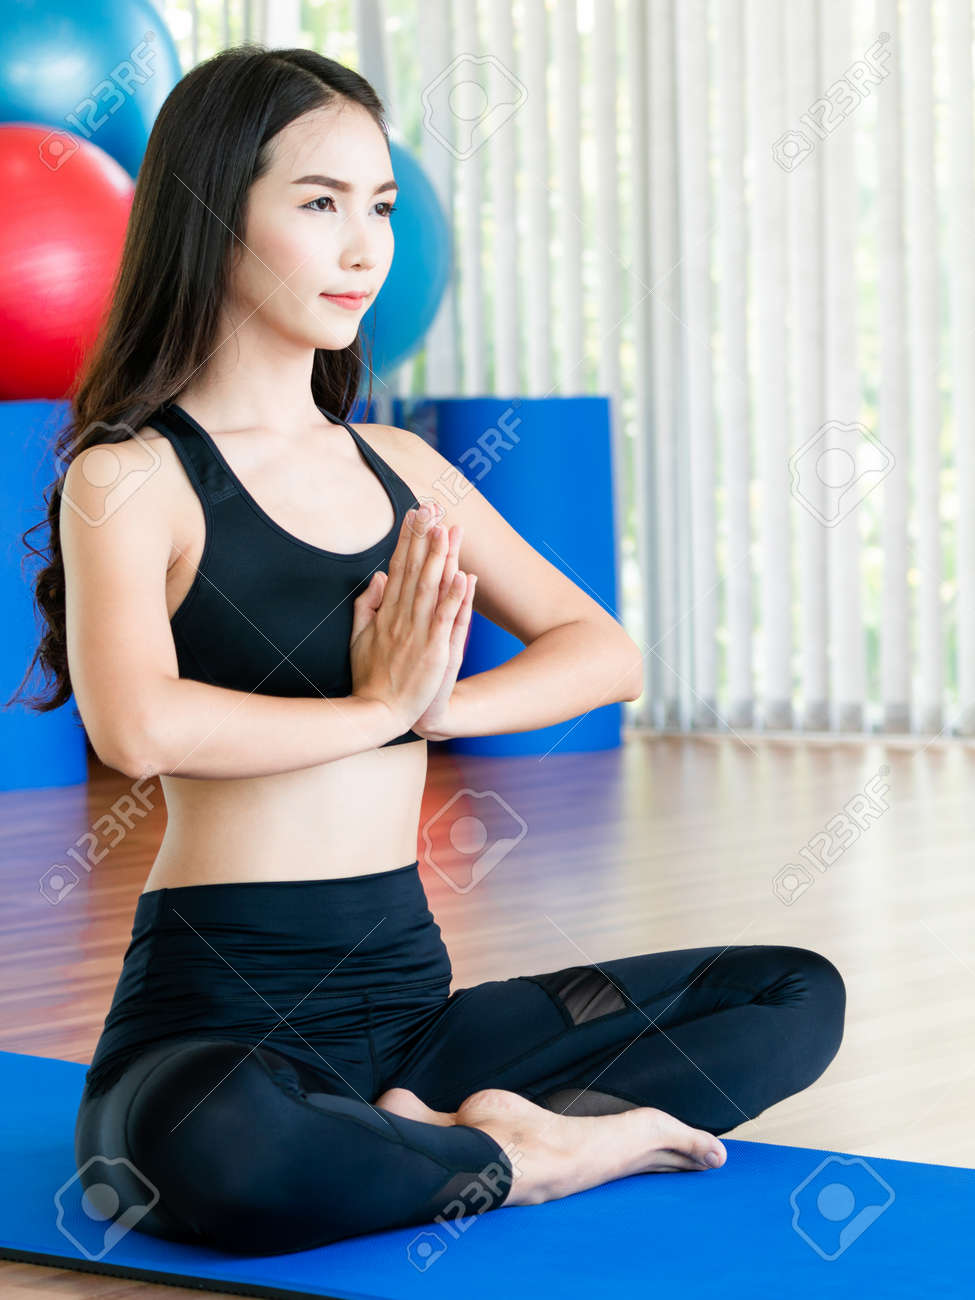 Young woman practicing yoga position in an indoor gym studio. Healthy and wellness lifestyle concept. - 121169294